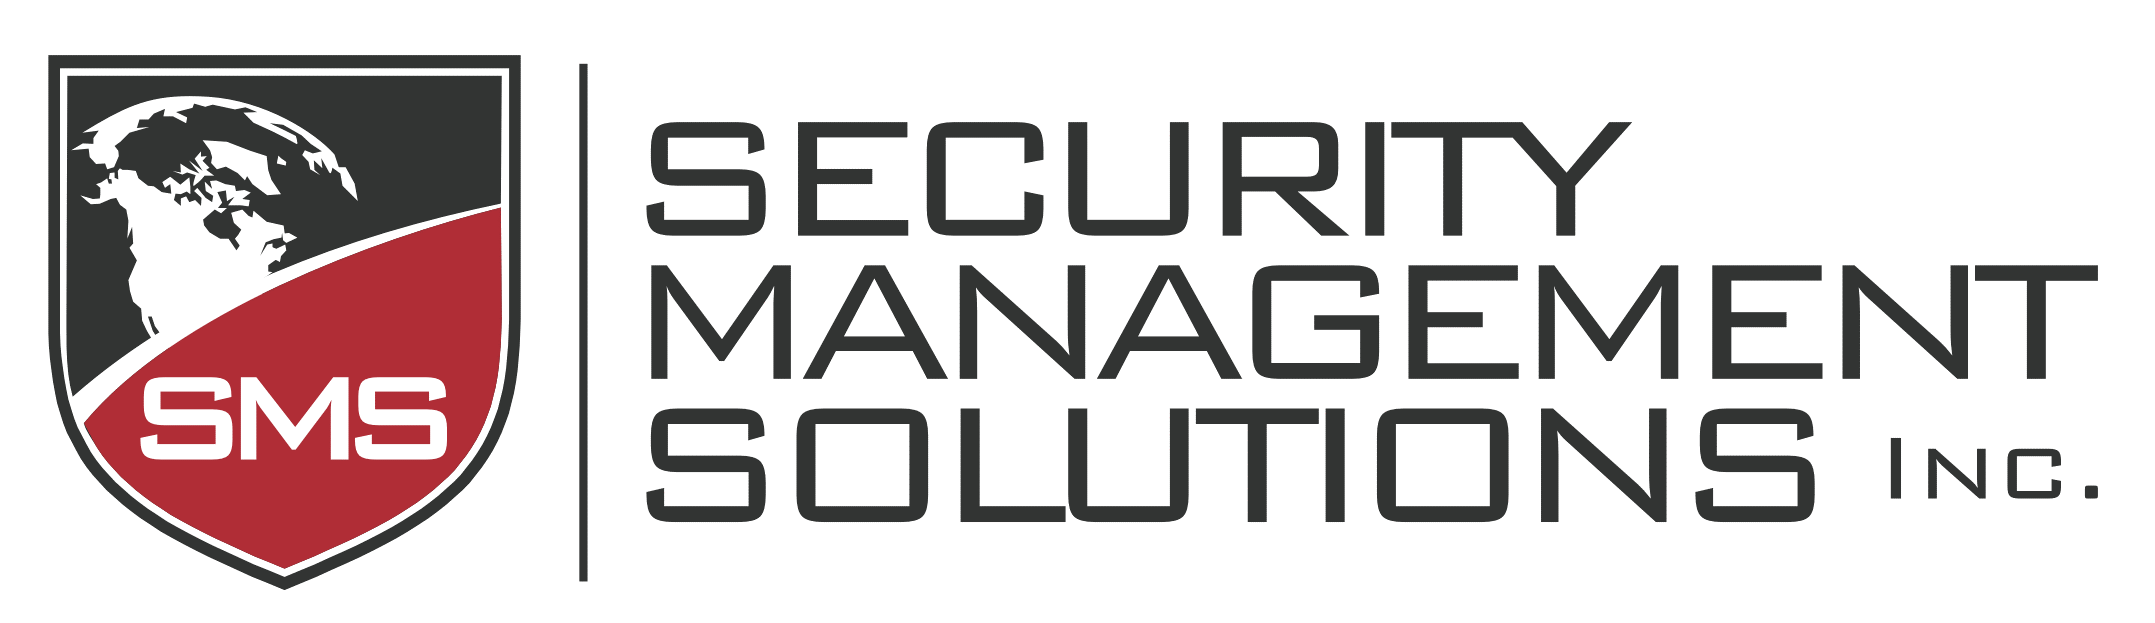 Security management solutions logo